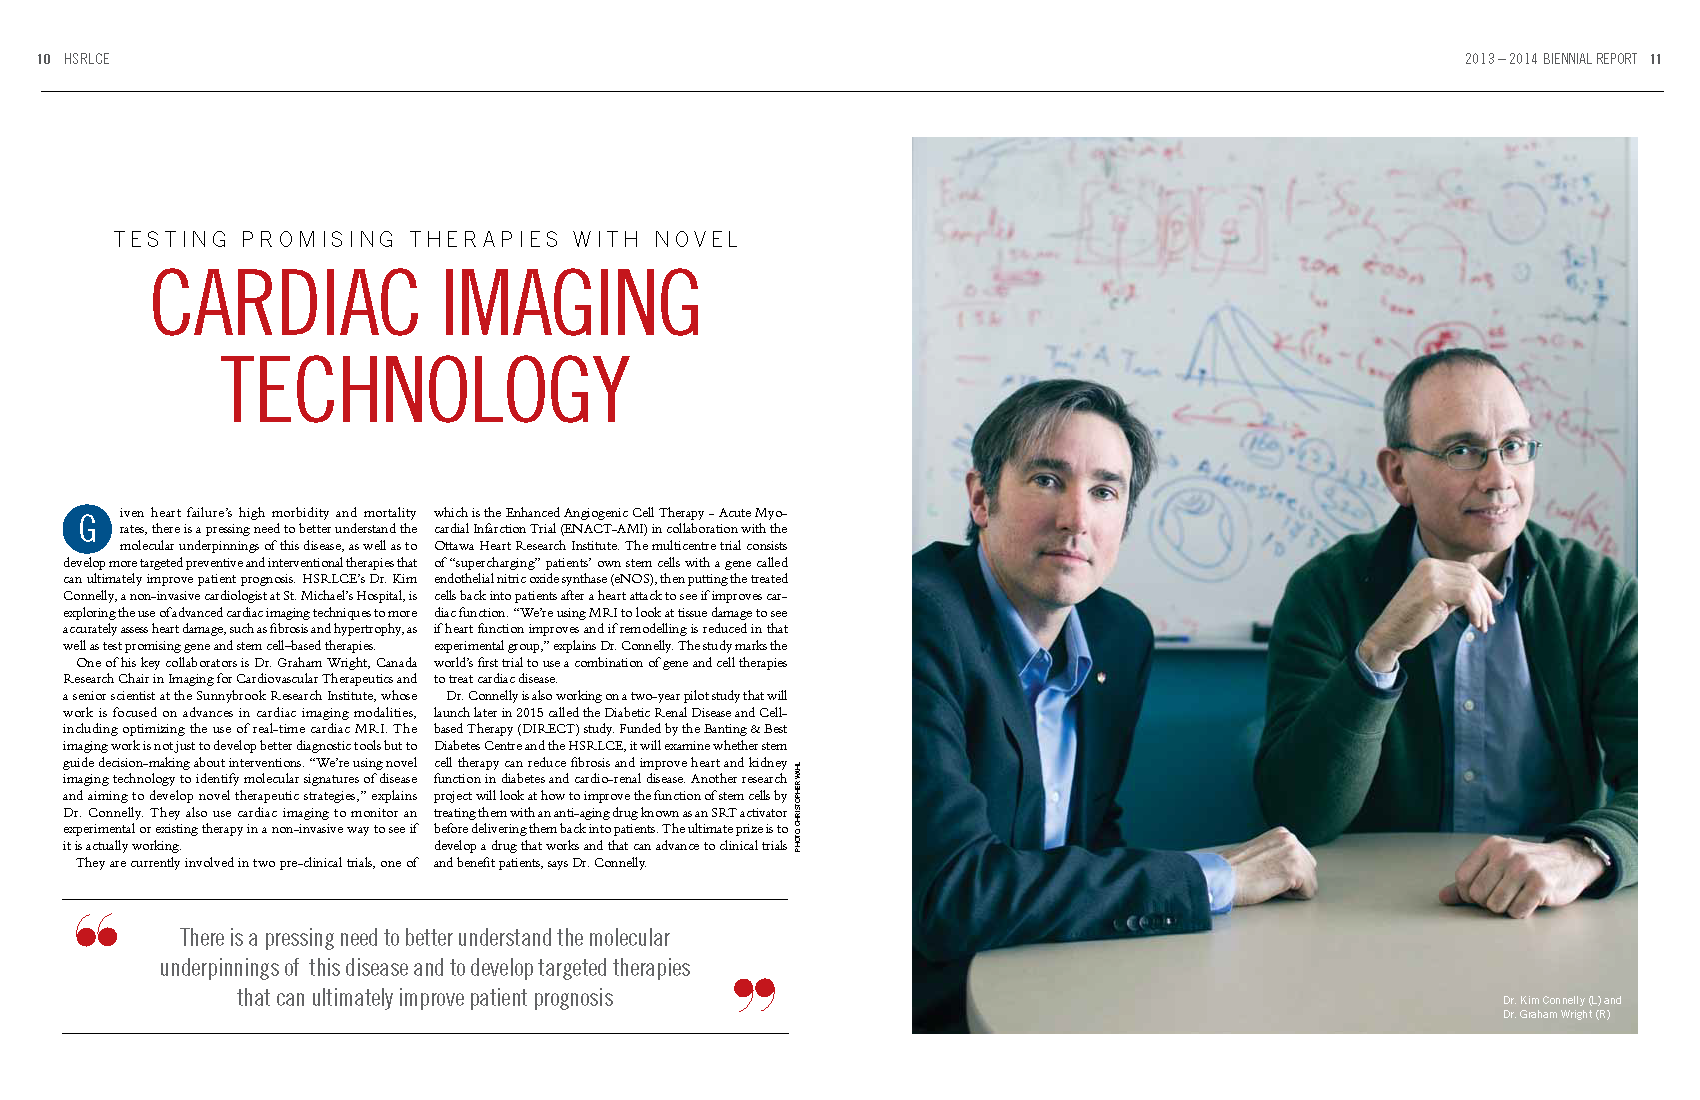 Cardiac-Imaging-Technology